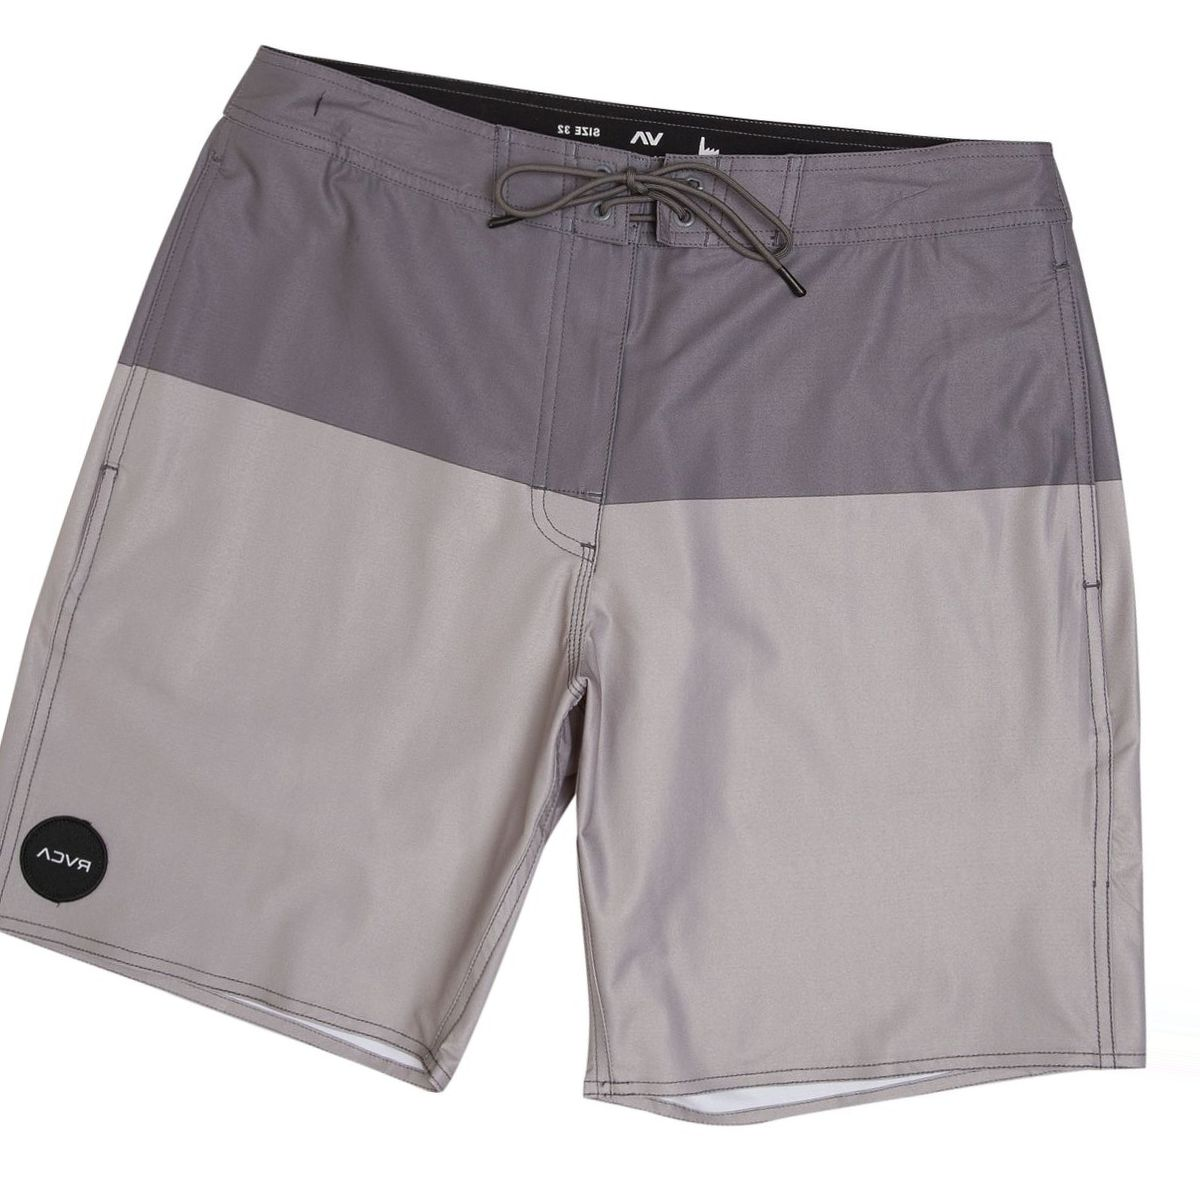 RVCA Gothard Trunk Short - Men's